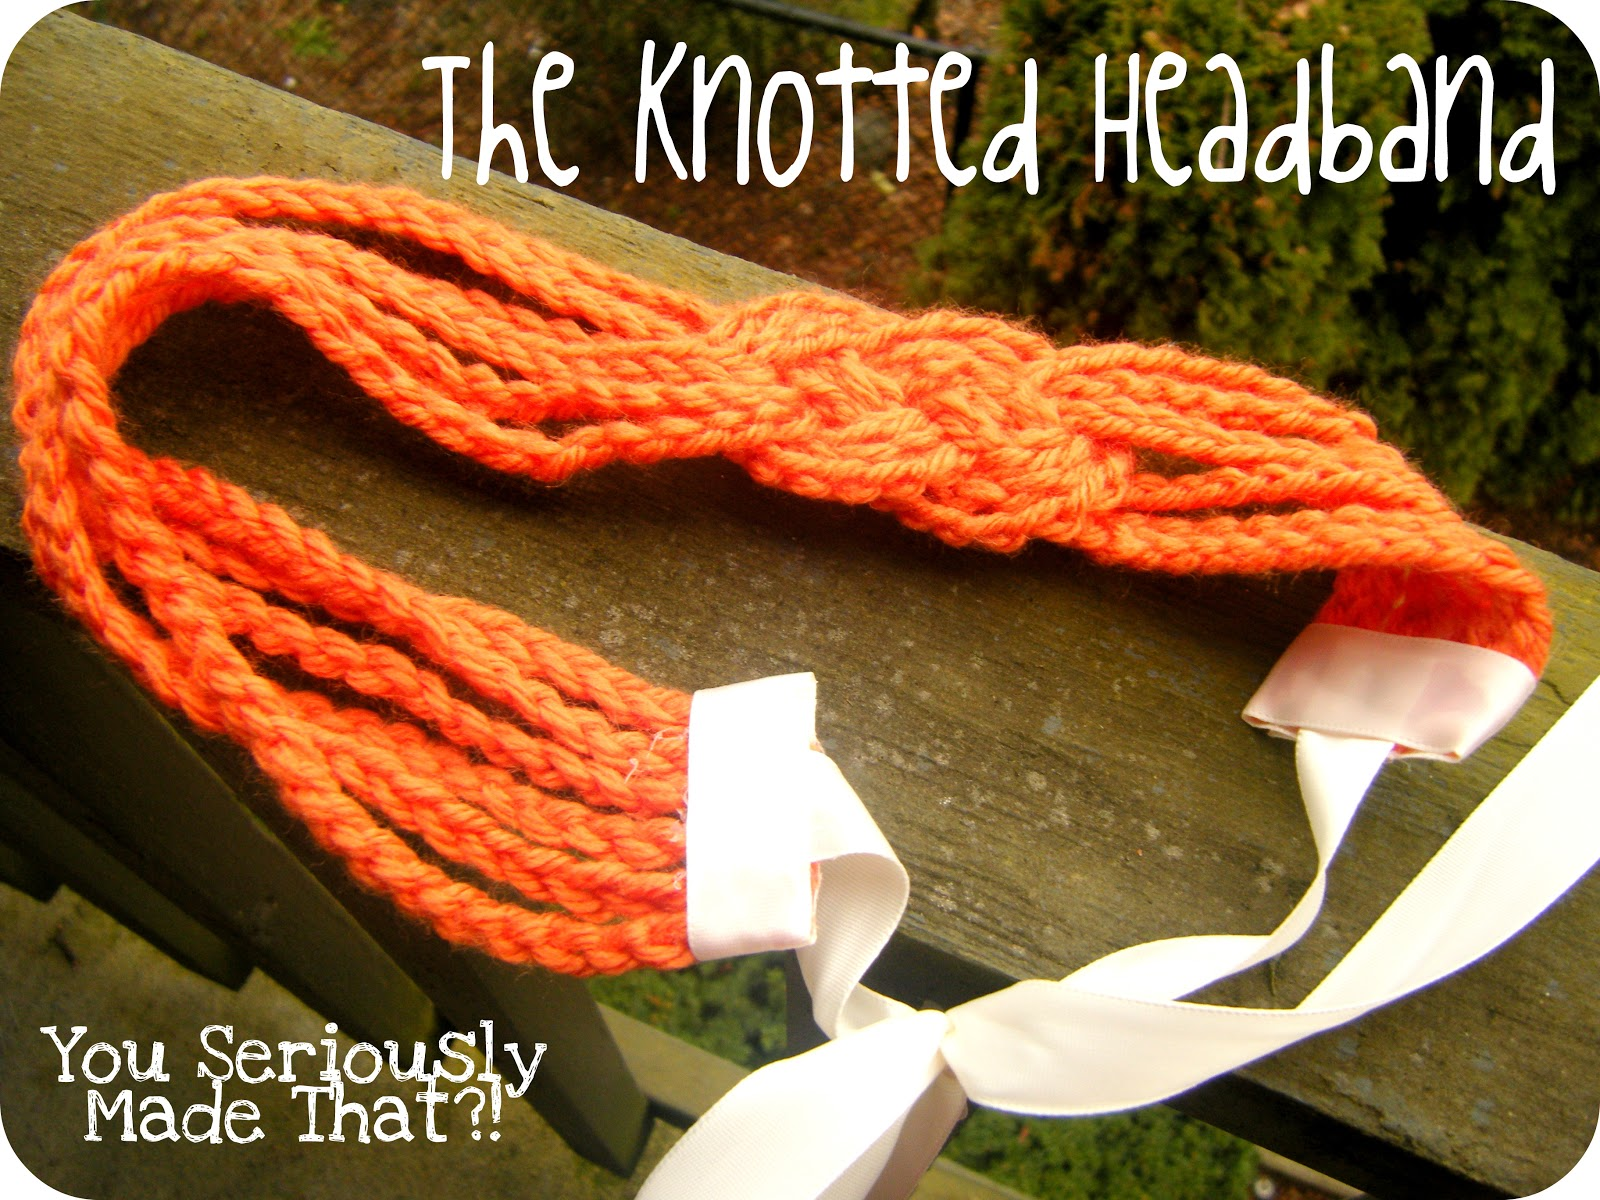 You seriously made that the knotted headband tutorial the knotted headband tutorial baditri Image collections